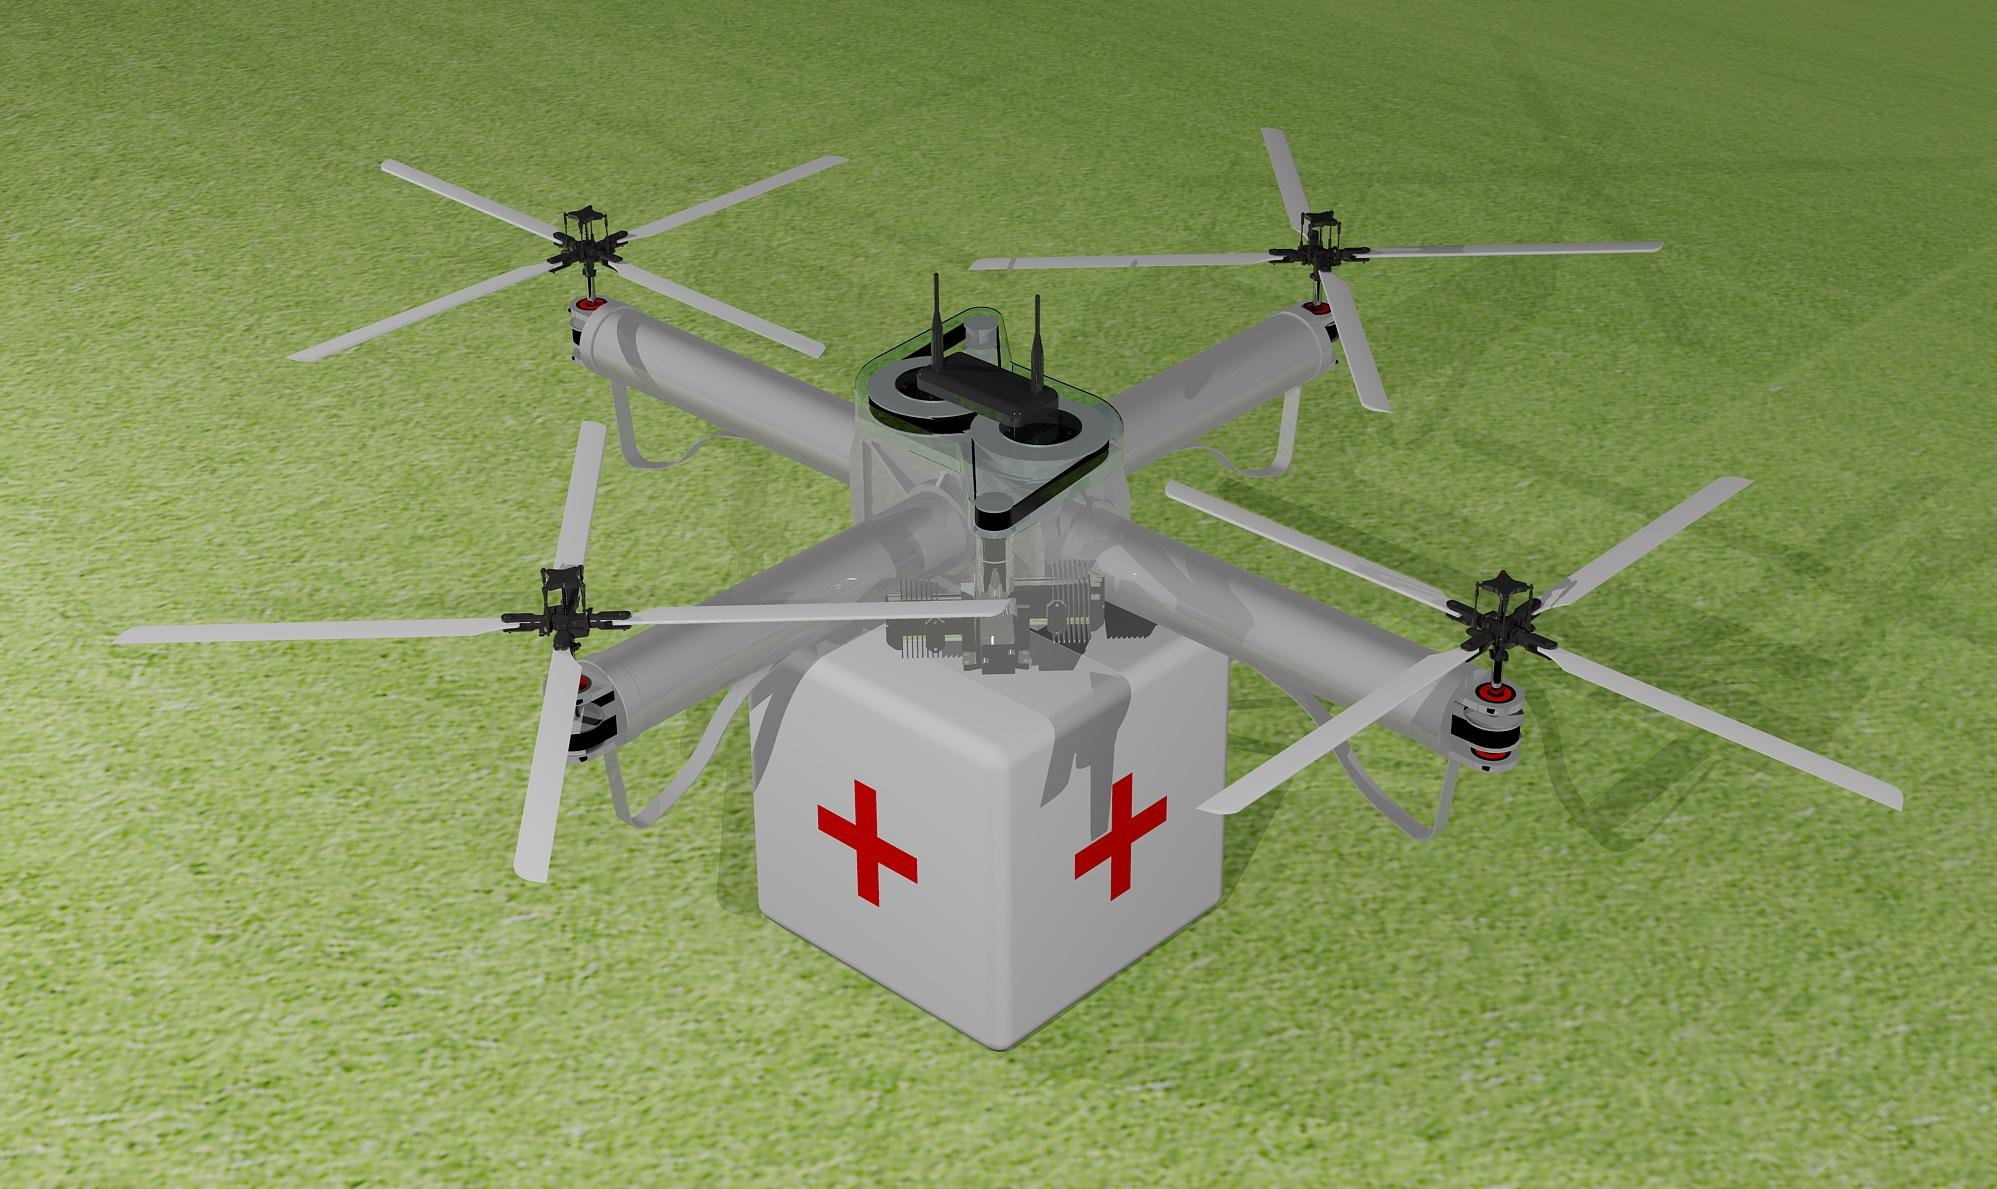 5 Ways Drones Could Help In A Disaster Like The Boston Marathon Bombing